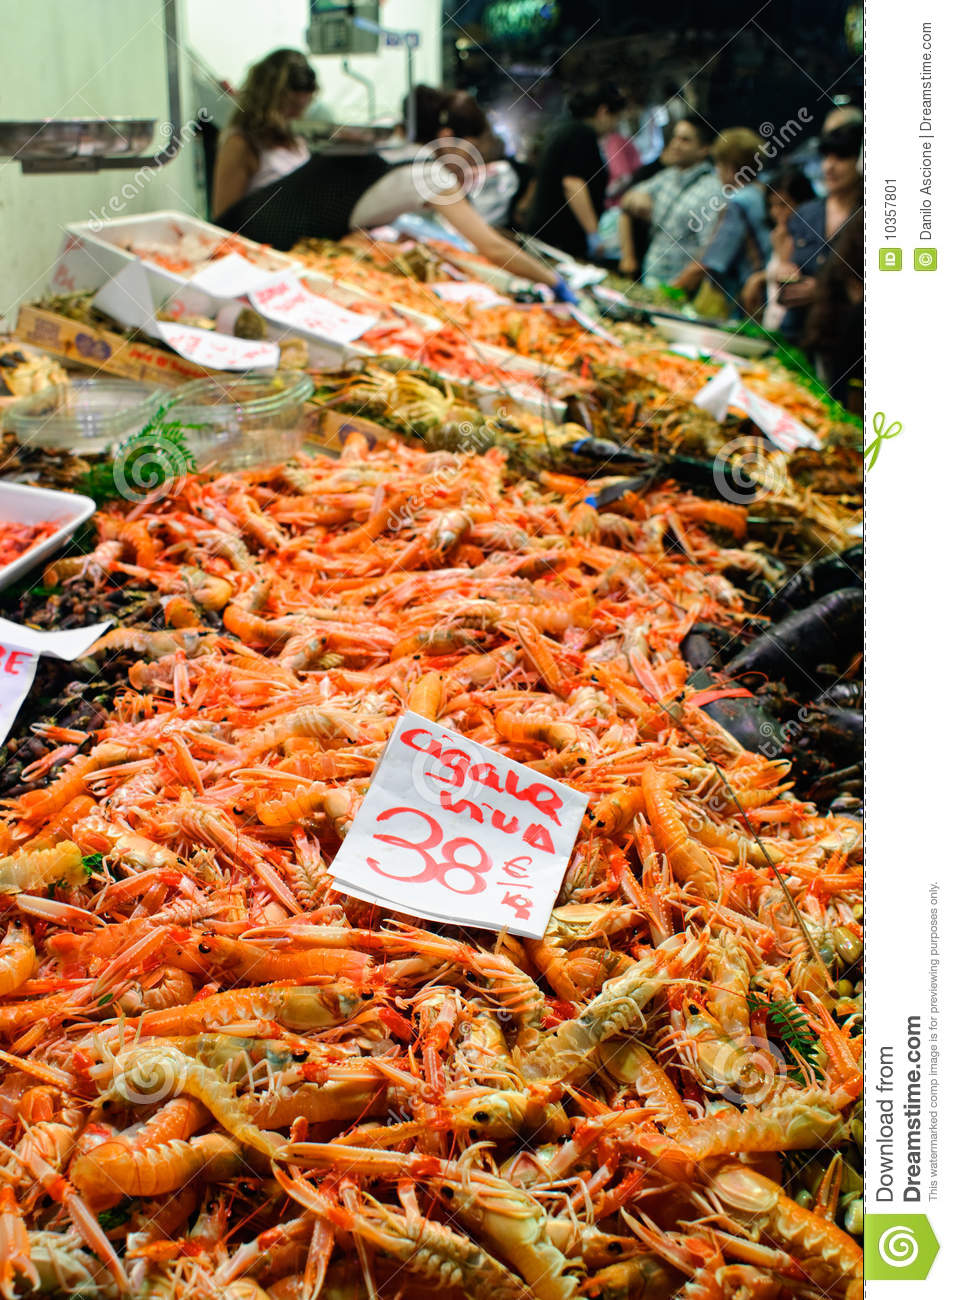 Scampi at fish market stock image image 10357801 for Local fish market